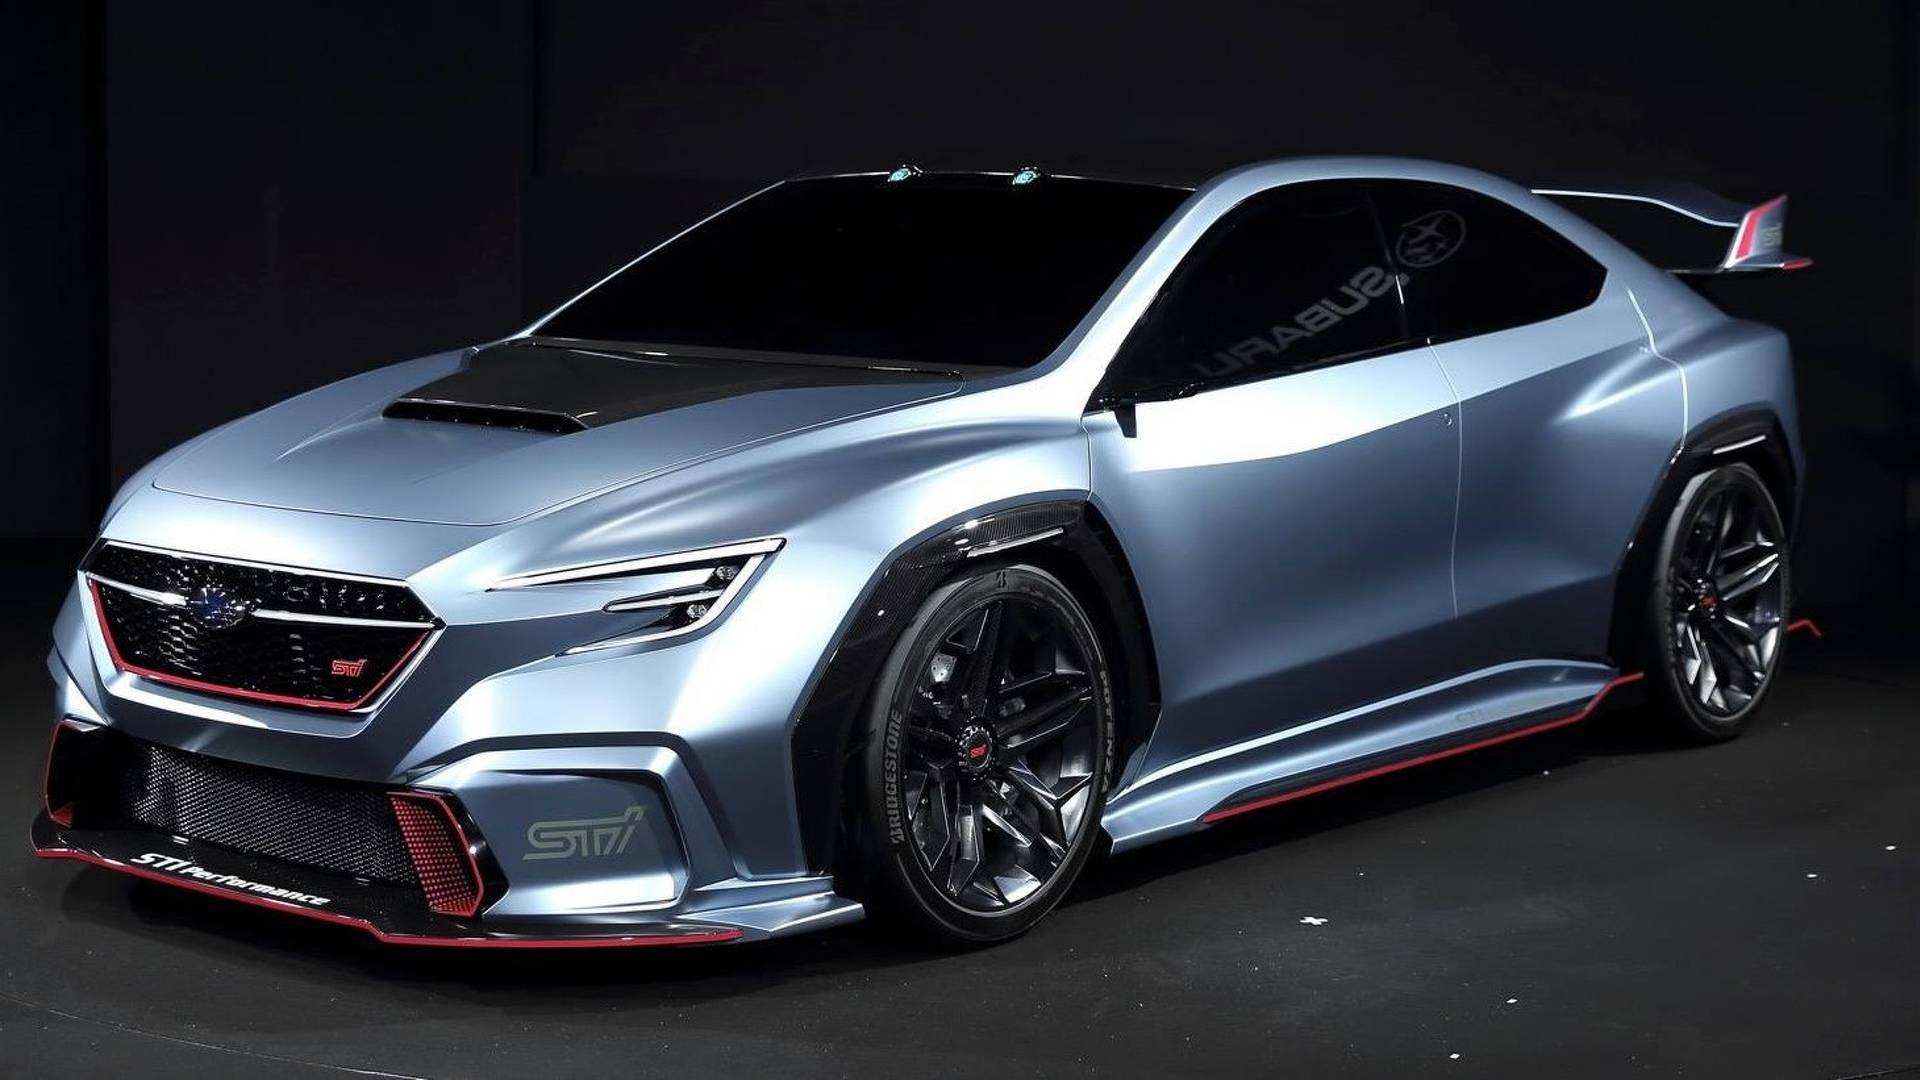 79 All New Subaru Wrx 2019 Concept New Model And Performance